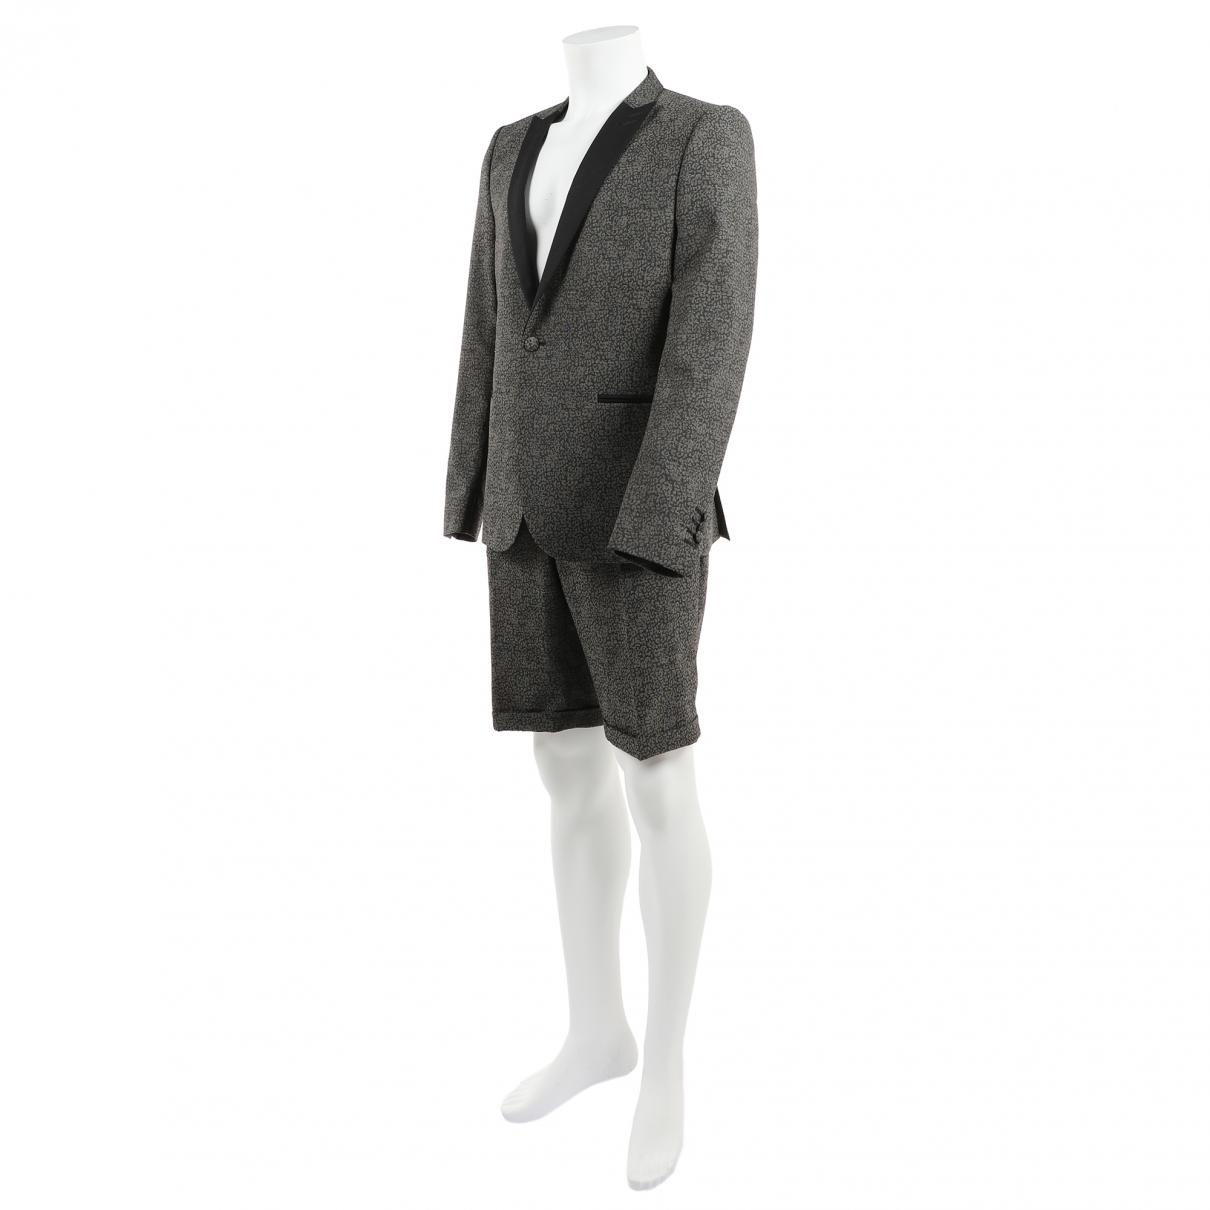 319a9069942 Lyst - The Kooples Brown Wool Suits in Brown for Men